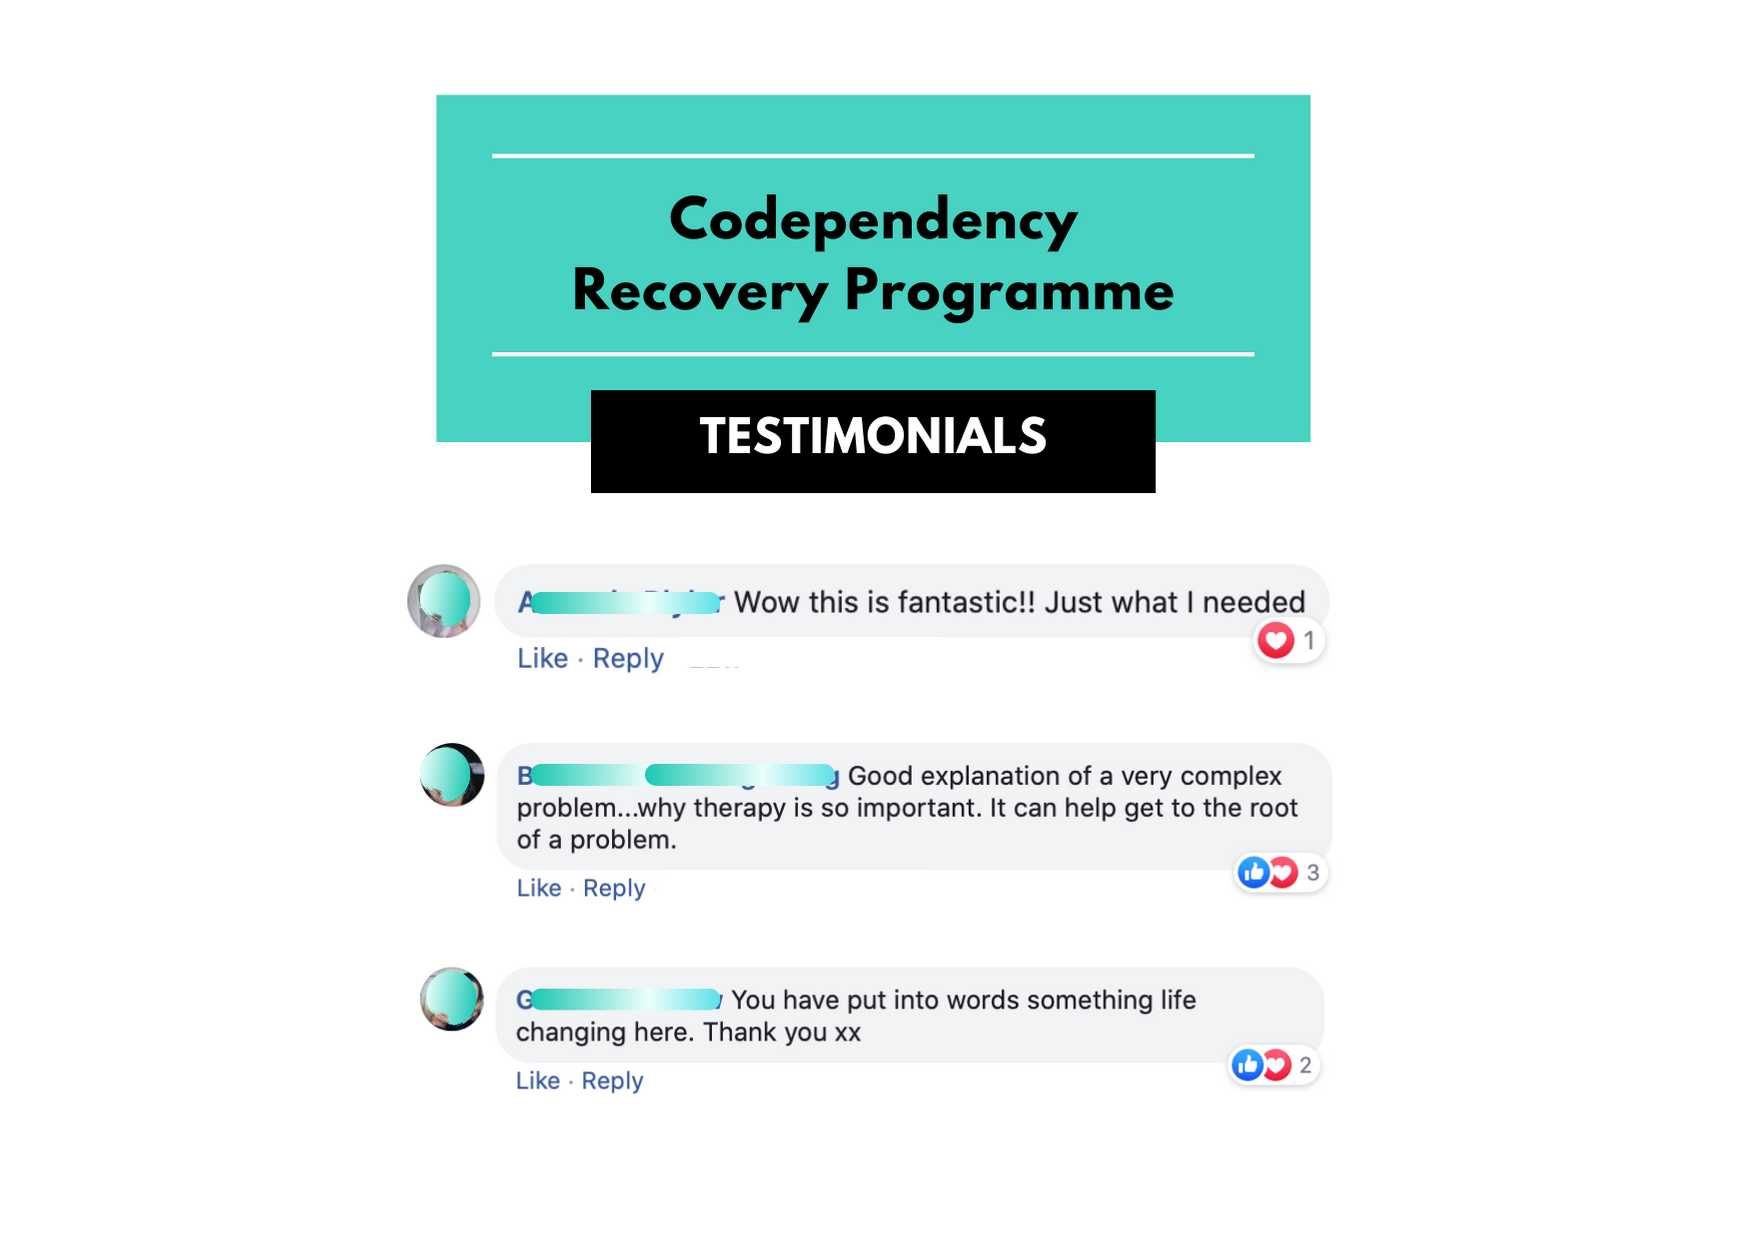 Codependency Recovery Programme Testimonials